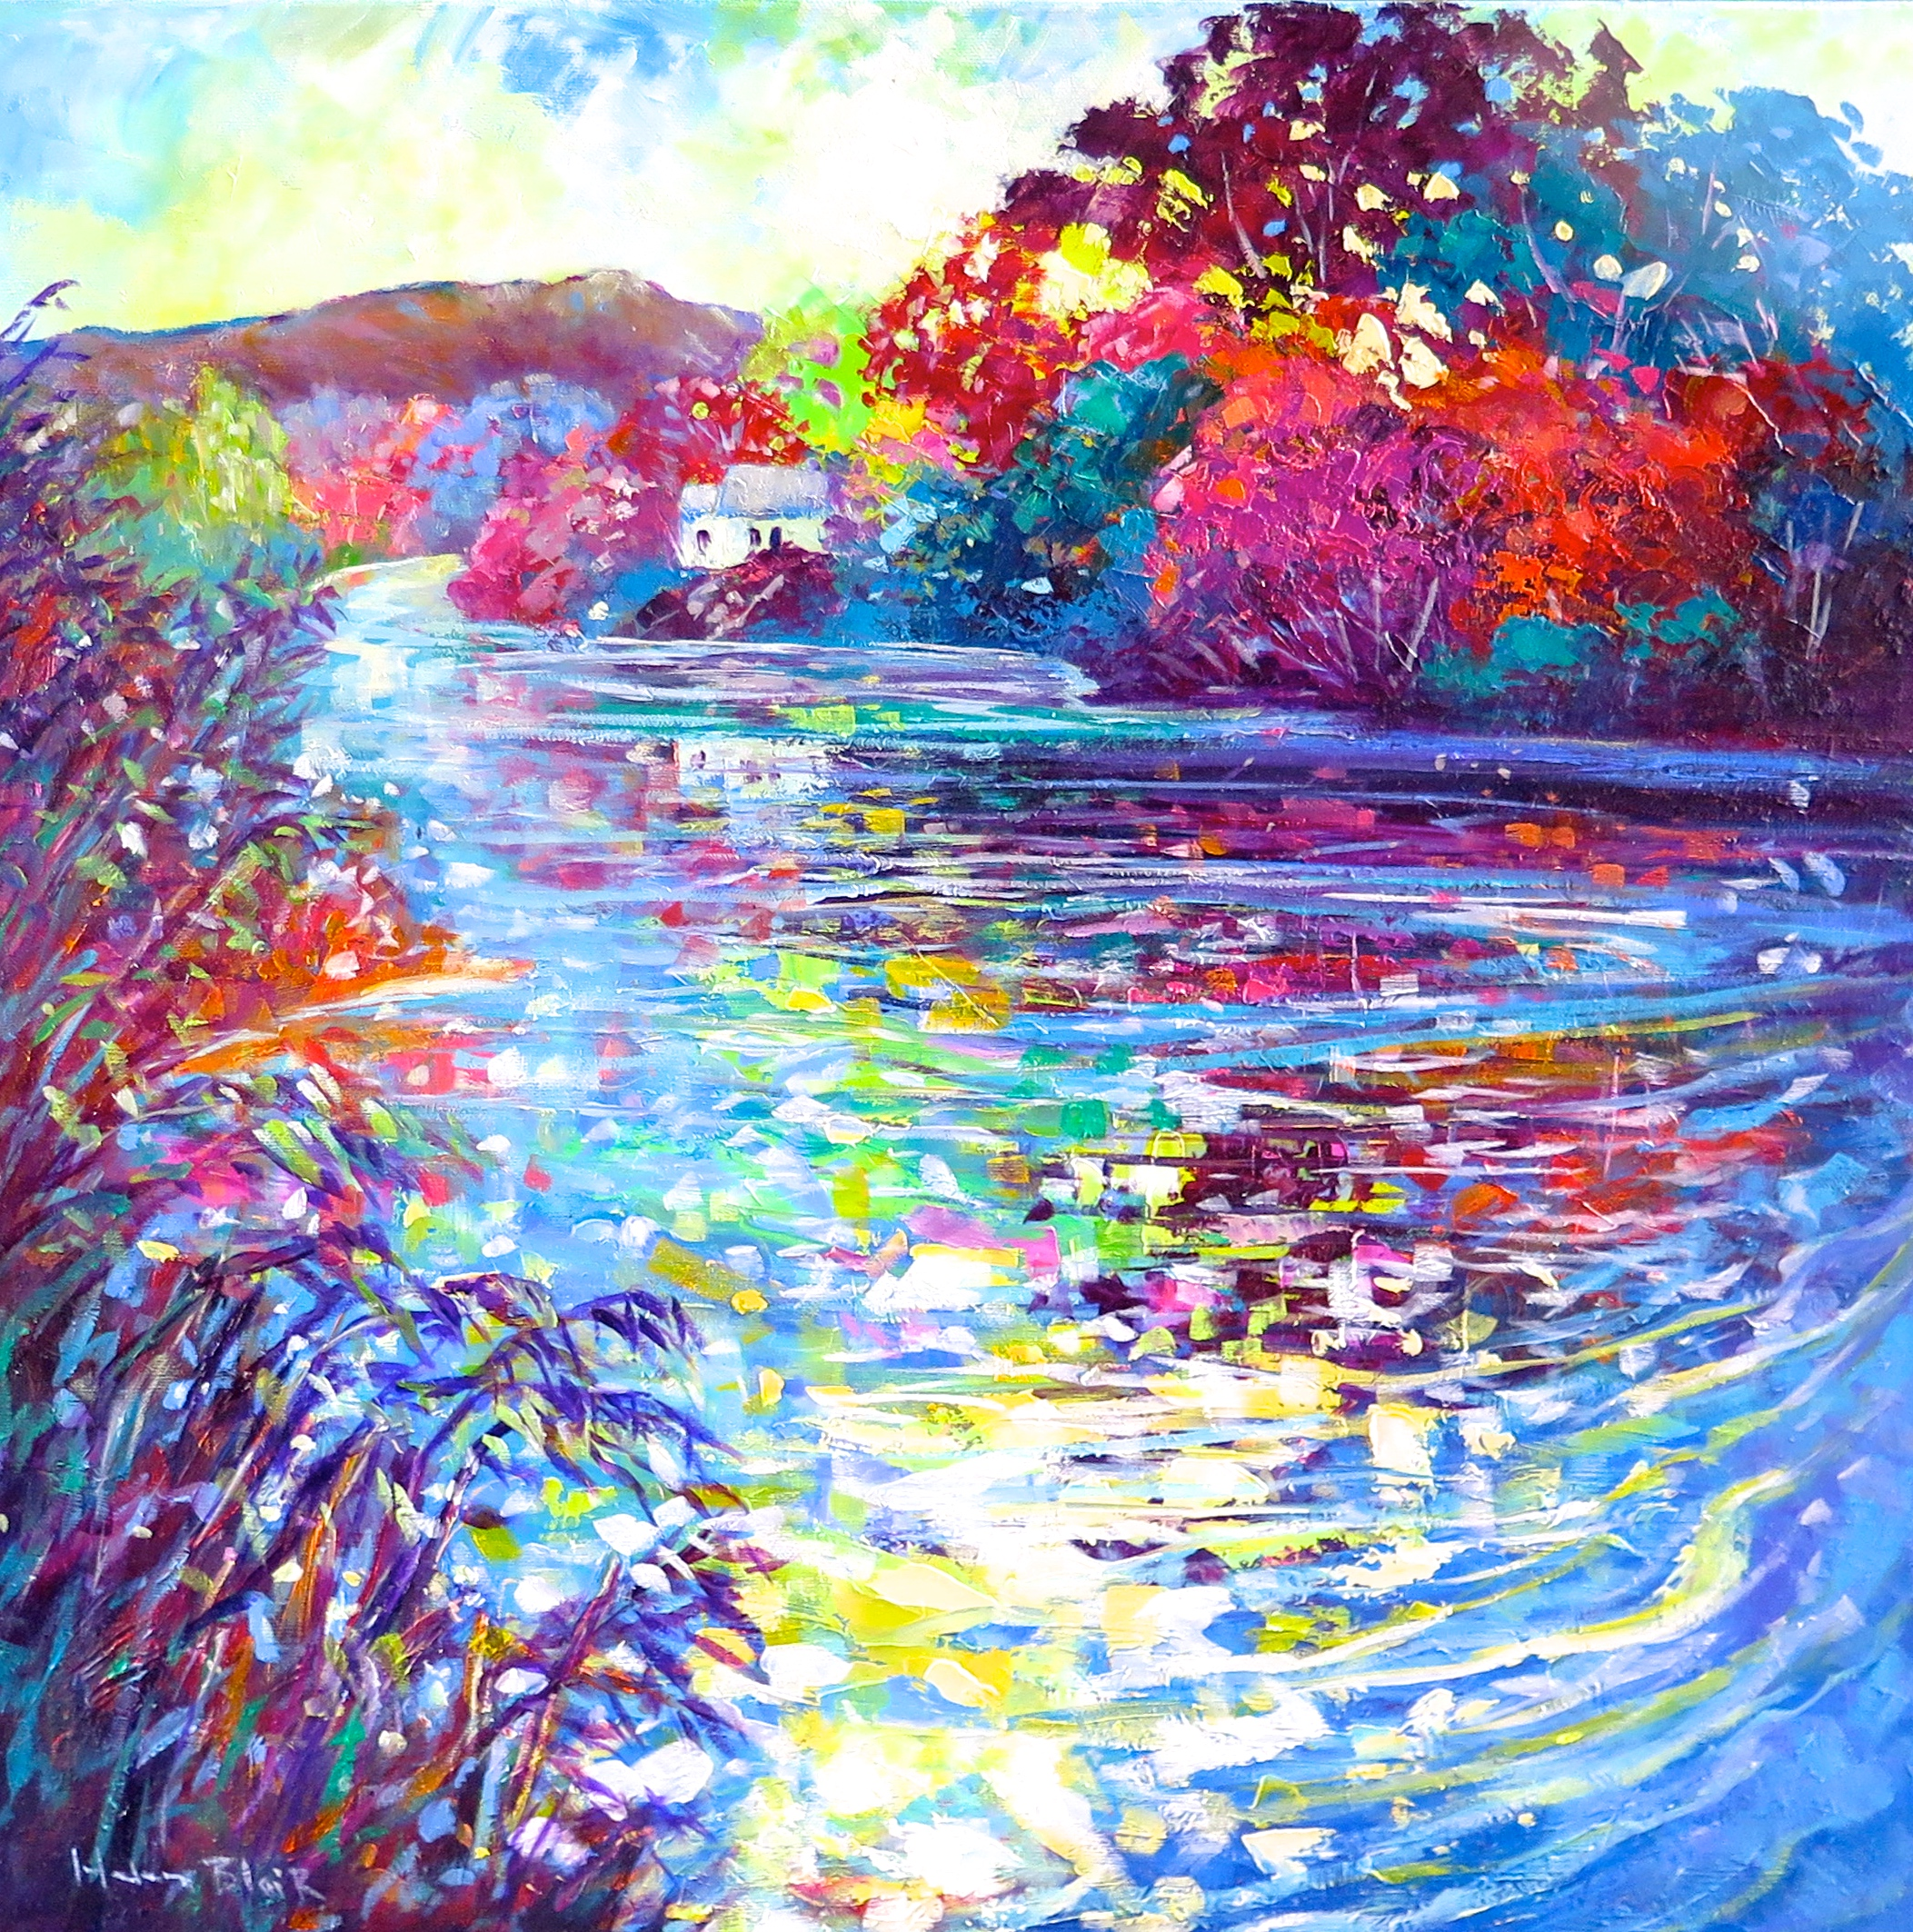 River Cottage Reflections, by Helen Blair.